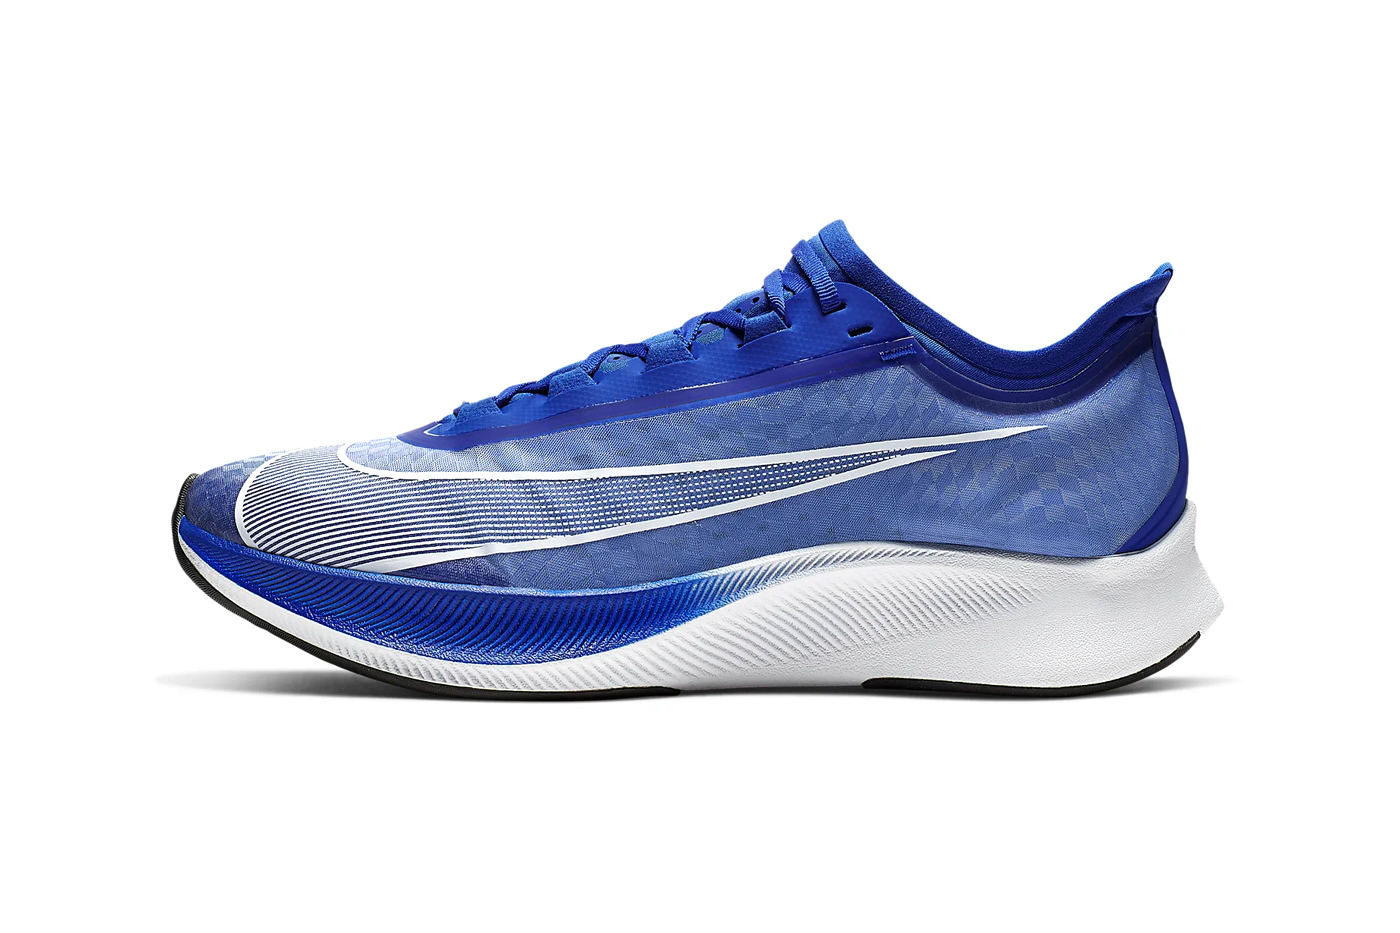 Nike Zoom Fly 3 Racer Blue Wolf Grey Black Pumice White Atmosphere Grey colorways tpu uppers react midsole vaporweave fastening lacing duo toned colorblock running time stamp